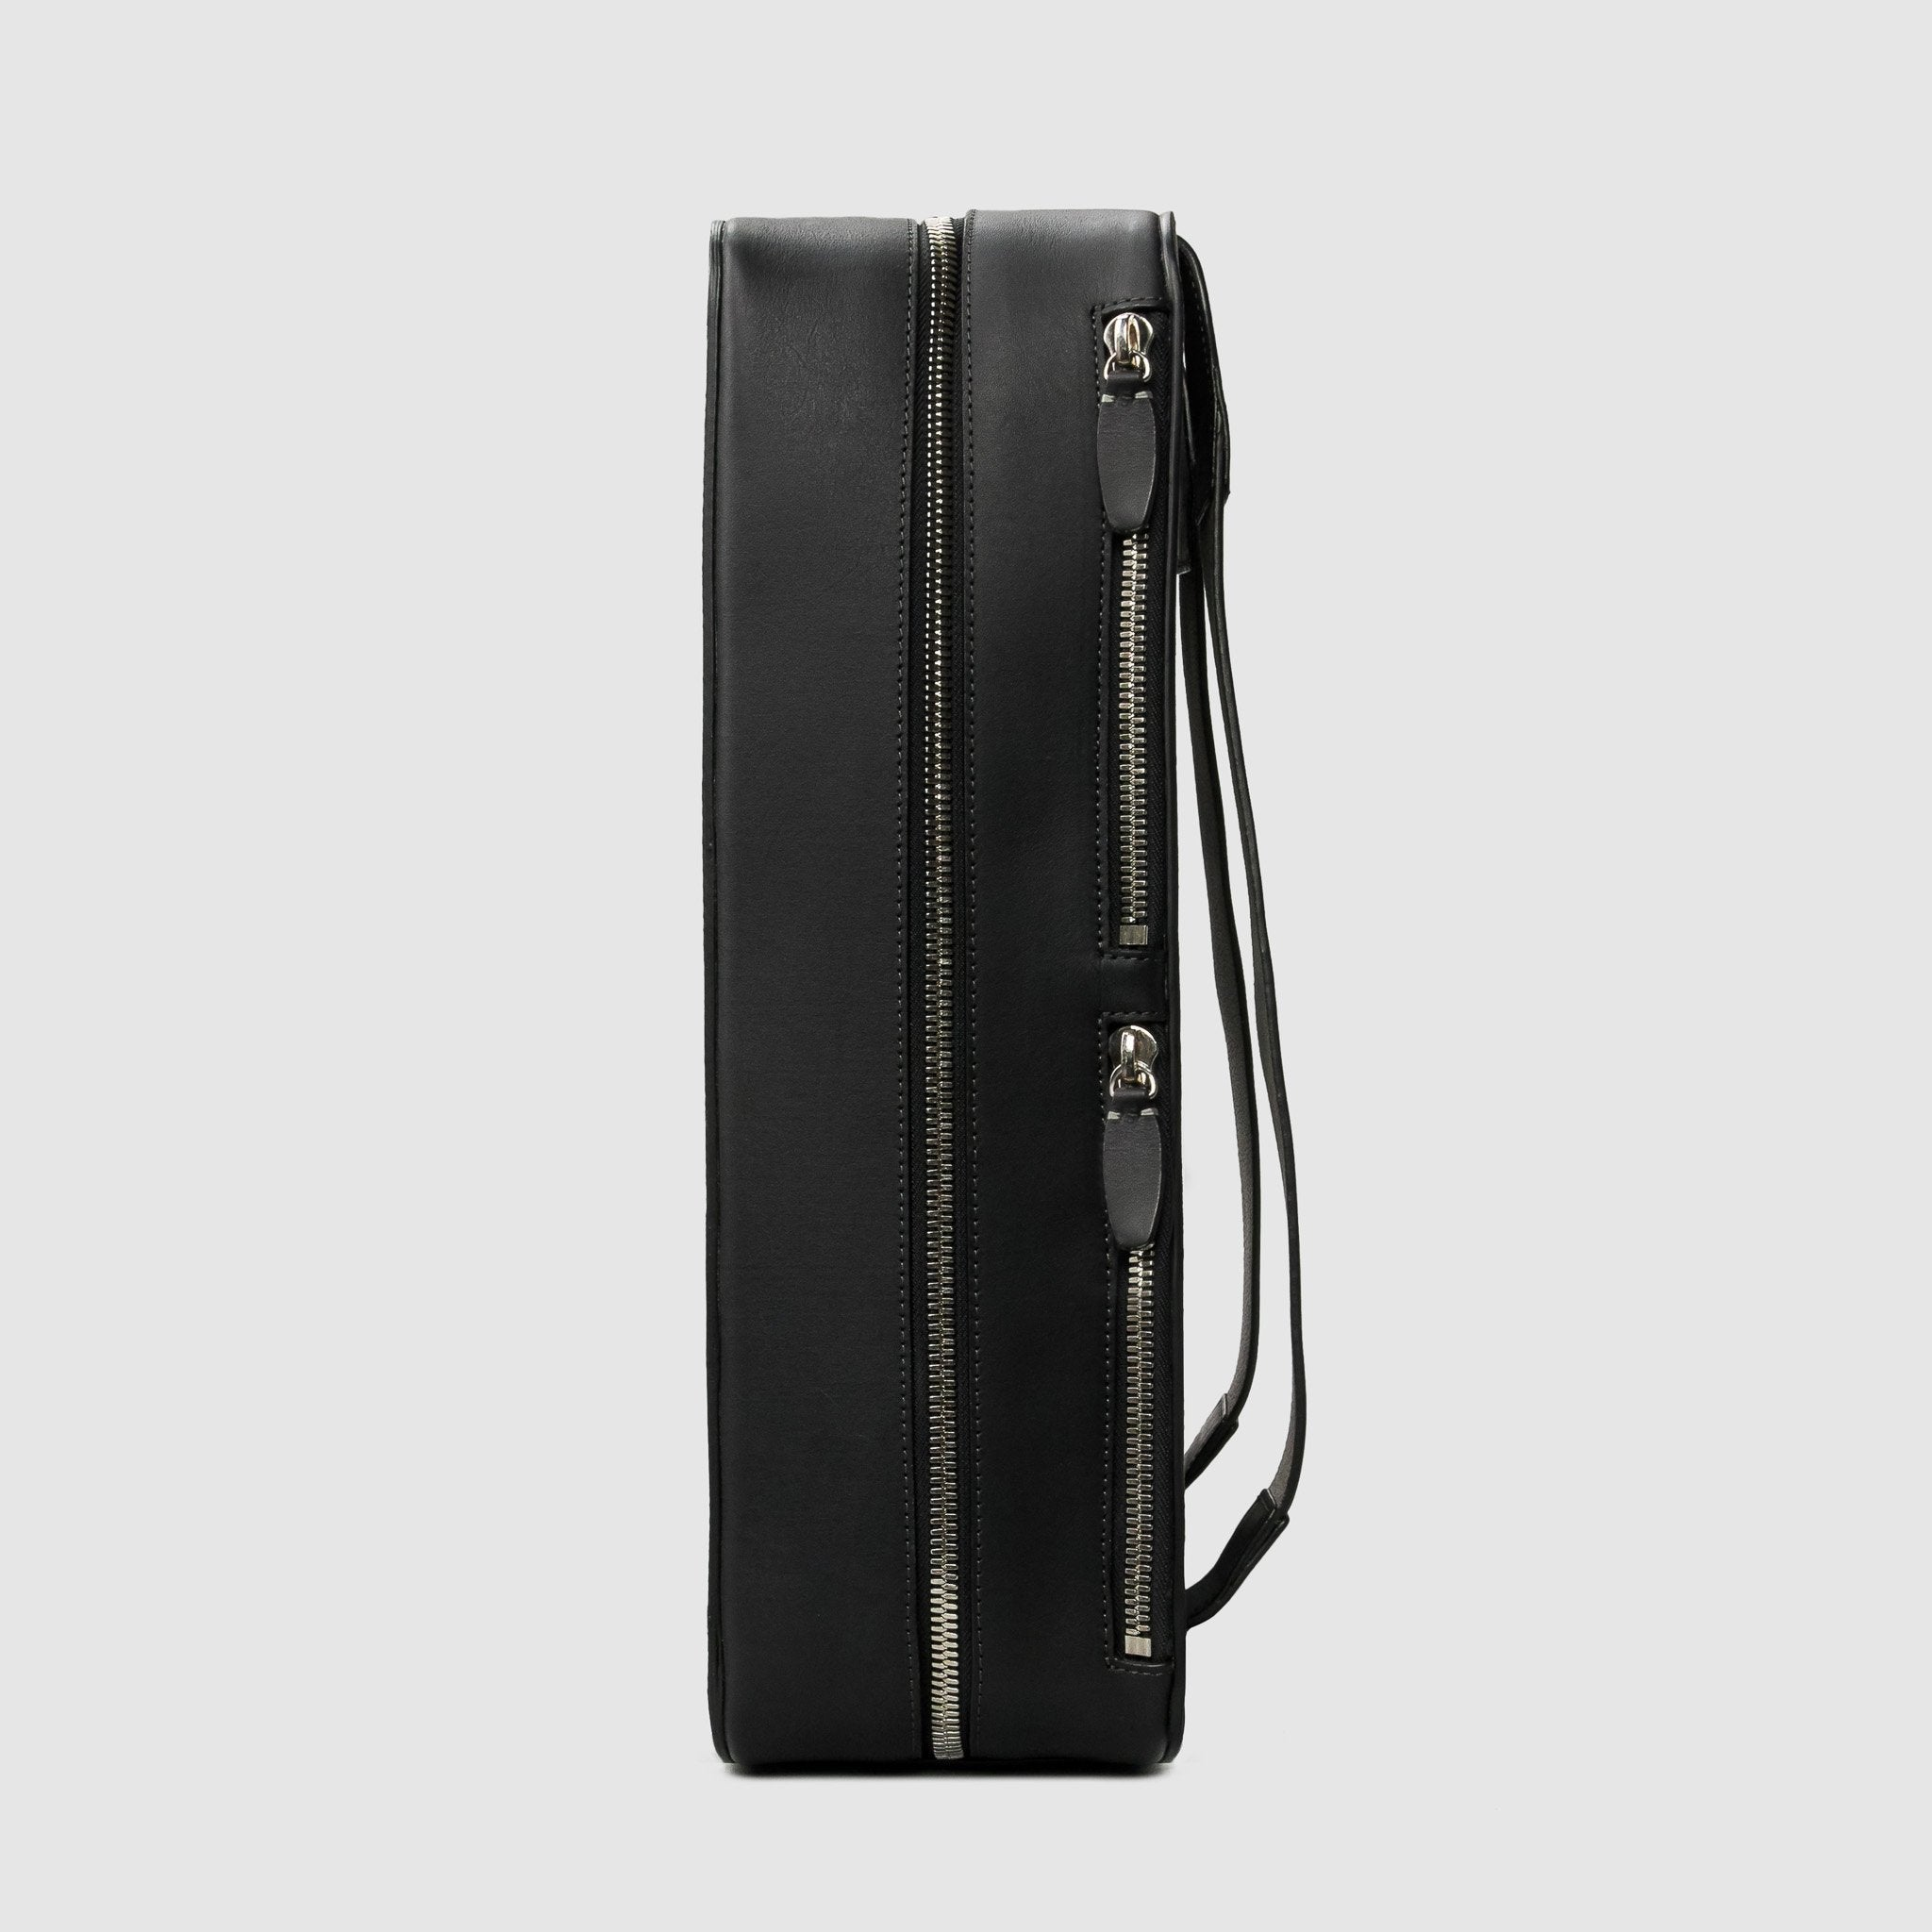 BACKPACK Bags ANSON CALDER French Calfskin leather minimal modern design designer Black _black